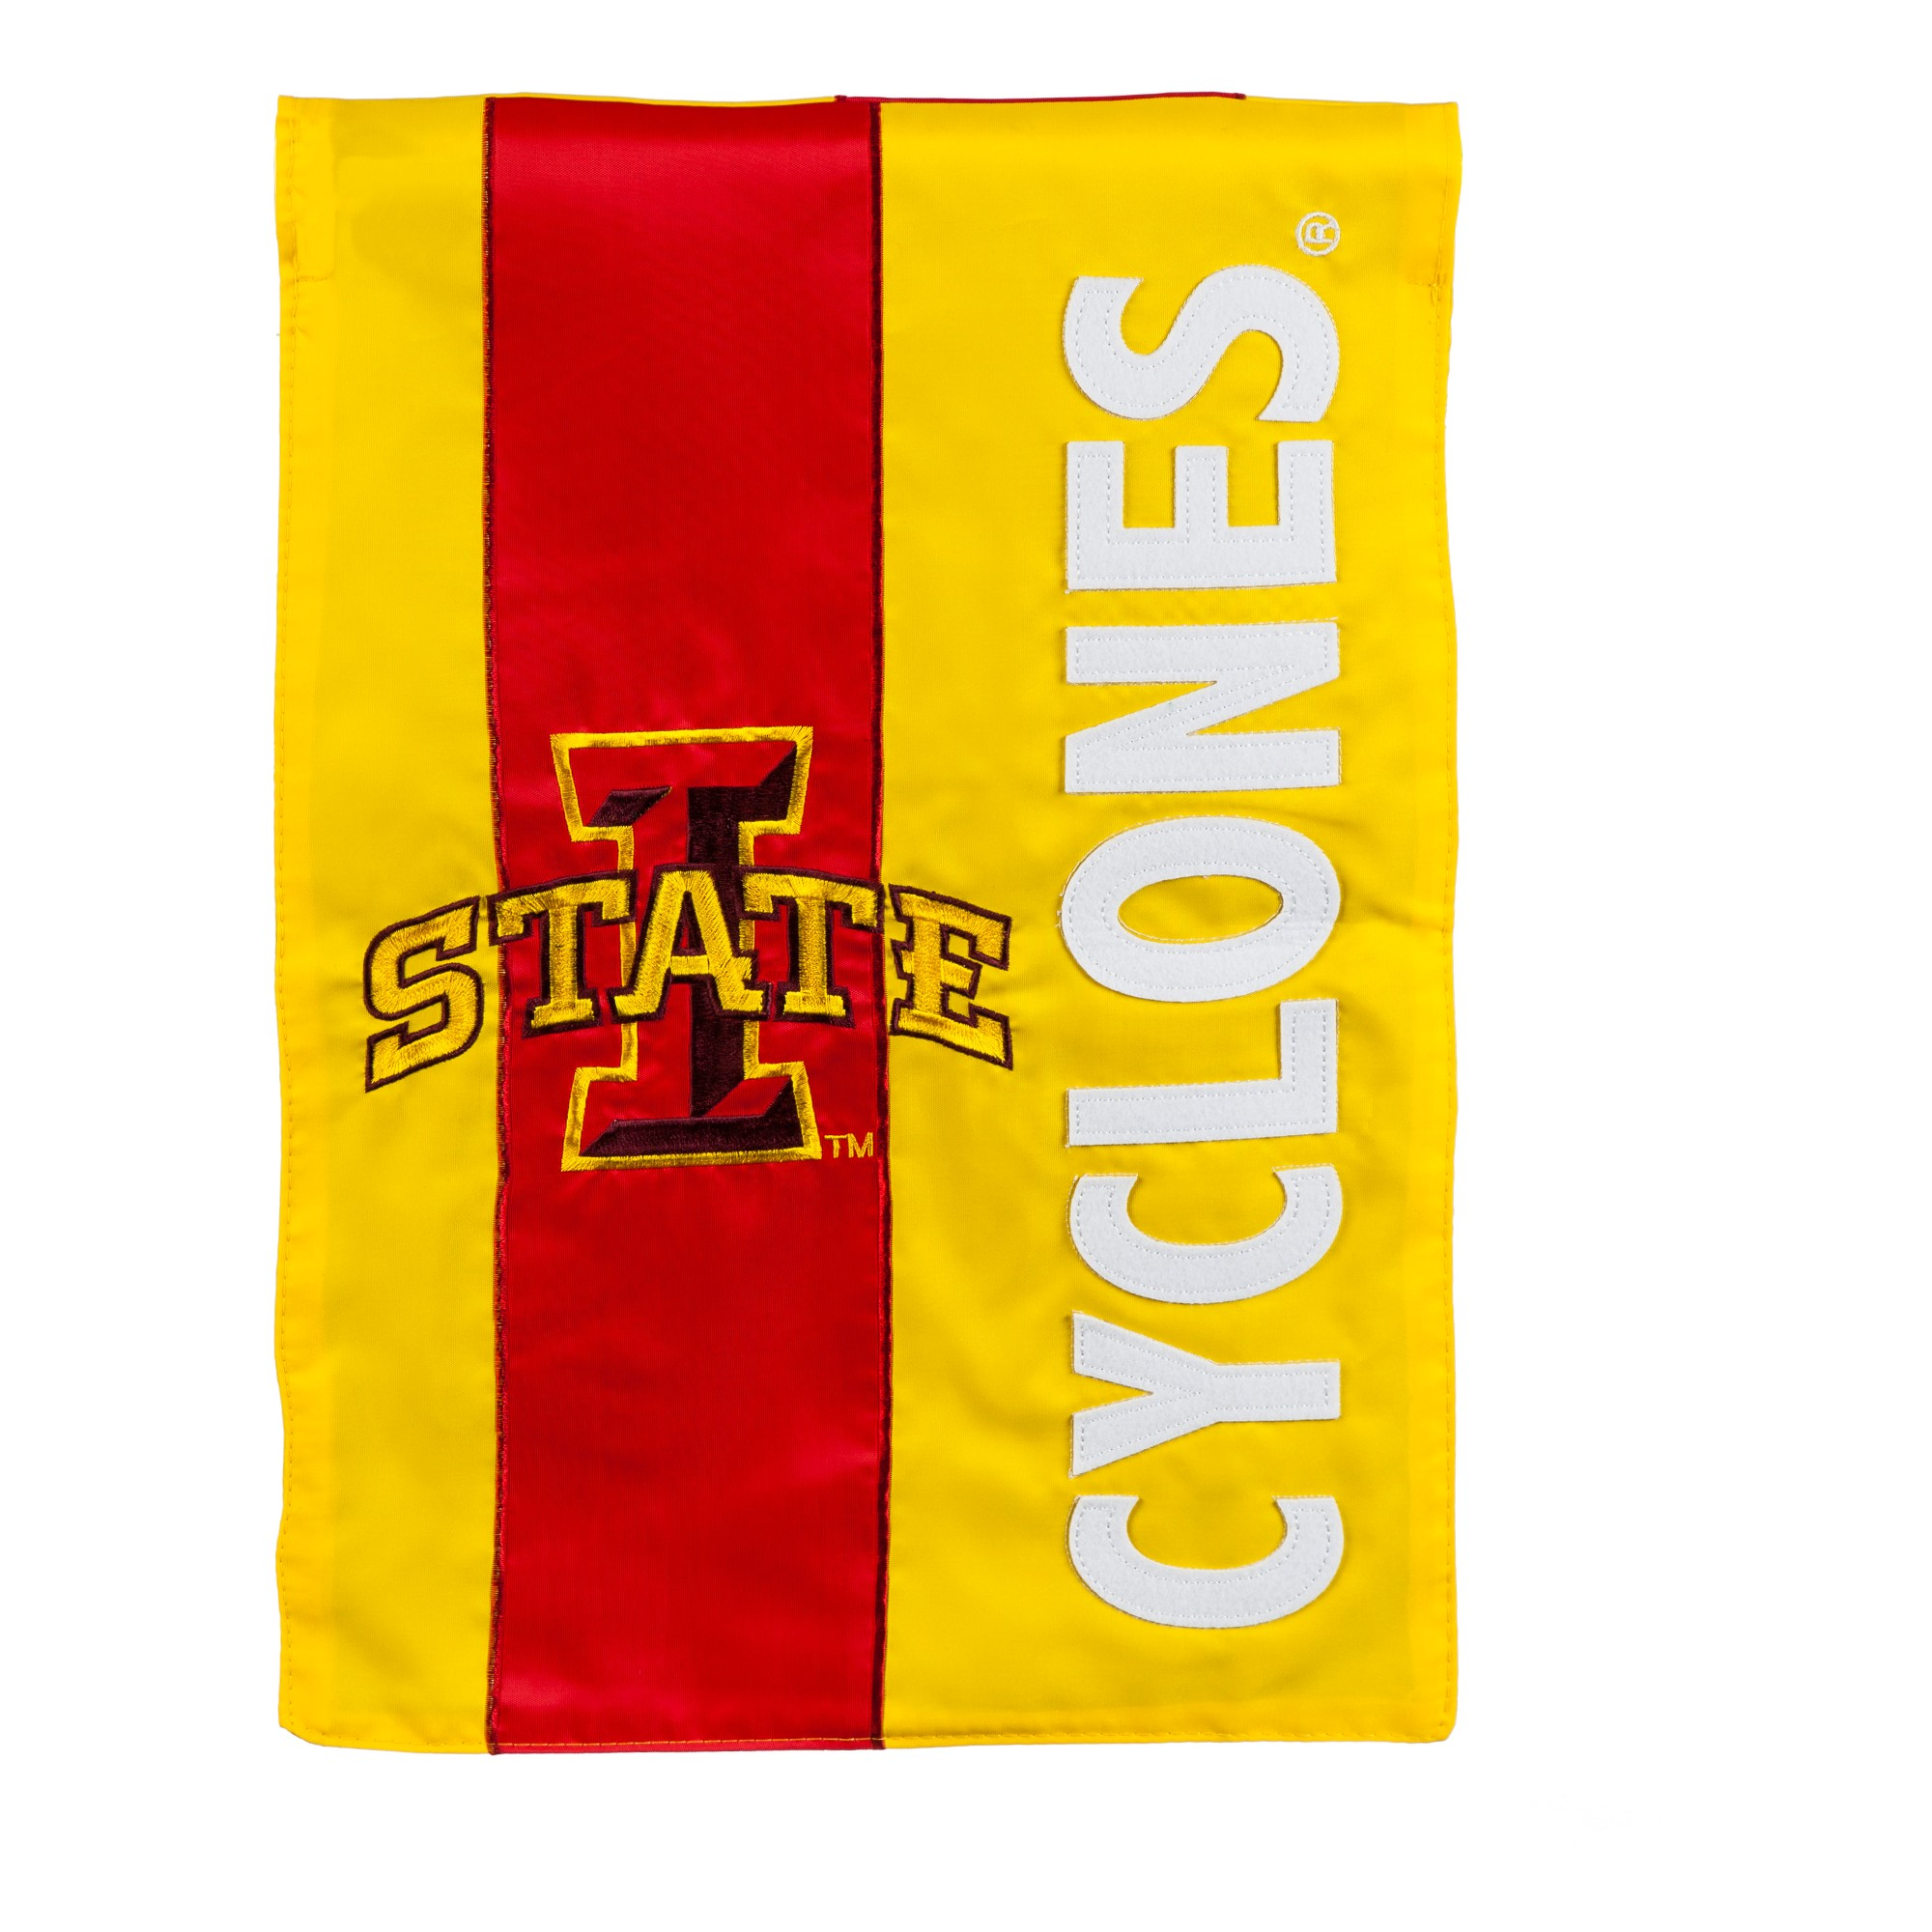 Outdoor Wall Art Evergr, Iowa State Cyclones | Iowa state cyclones ...